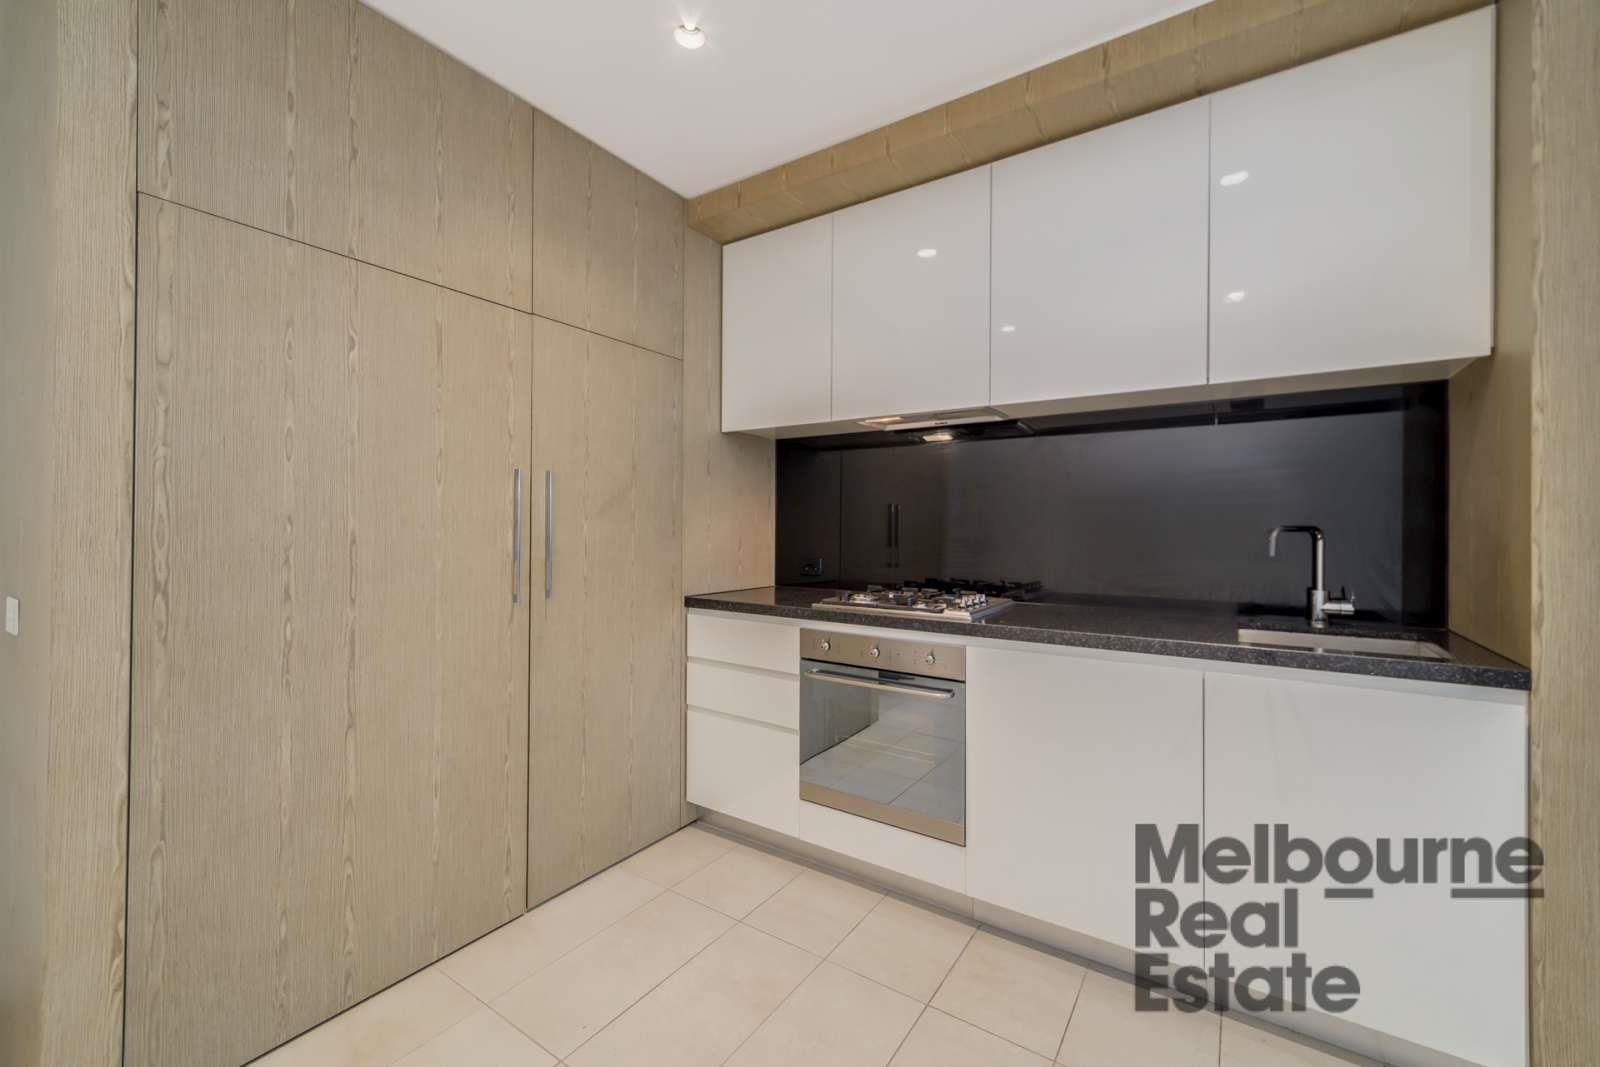 209/74 Queens Road, Melbourne 3004 VIC 3004, Image 1